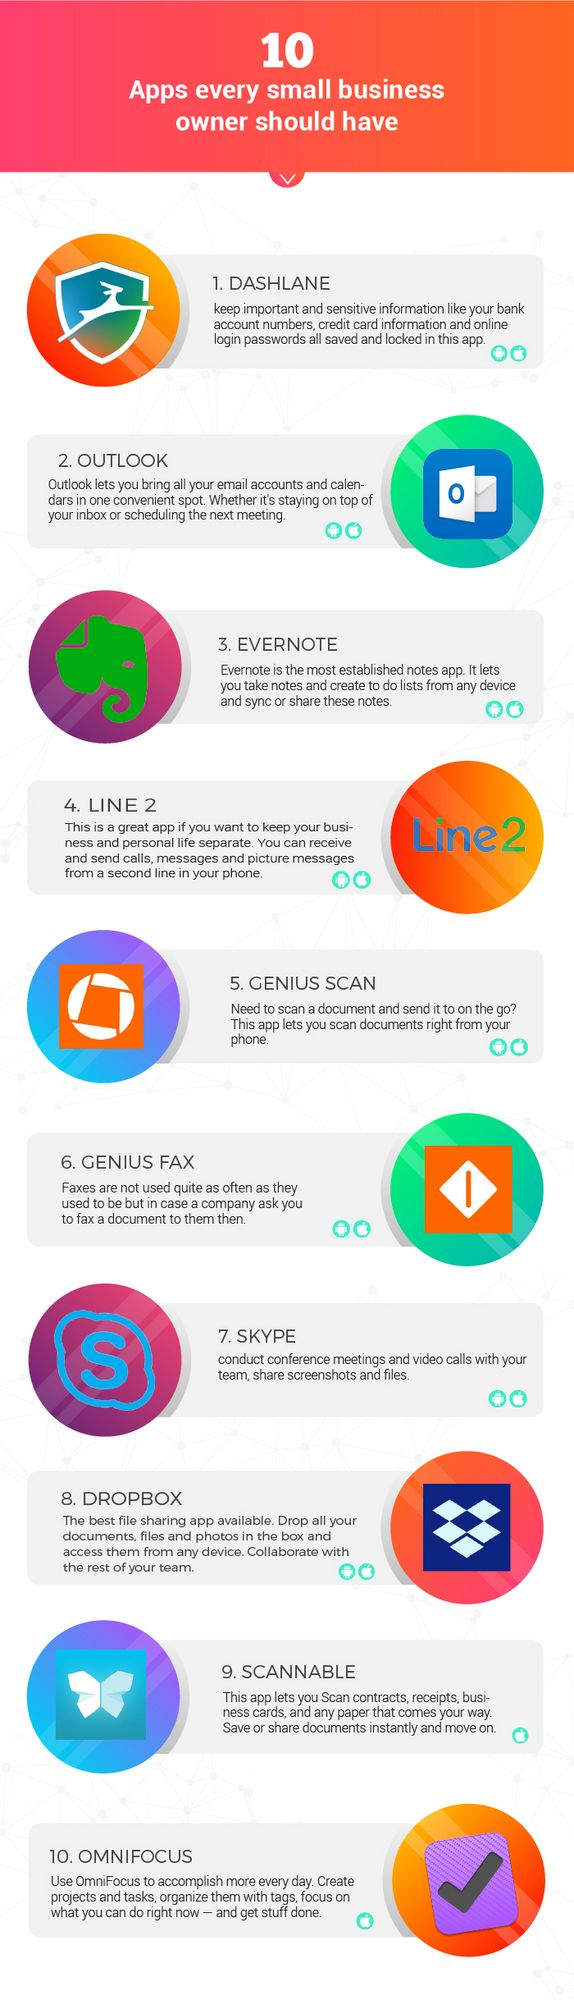 10 SMB Apps To Make Your Lives Easier! - Image 1